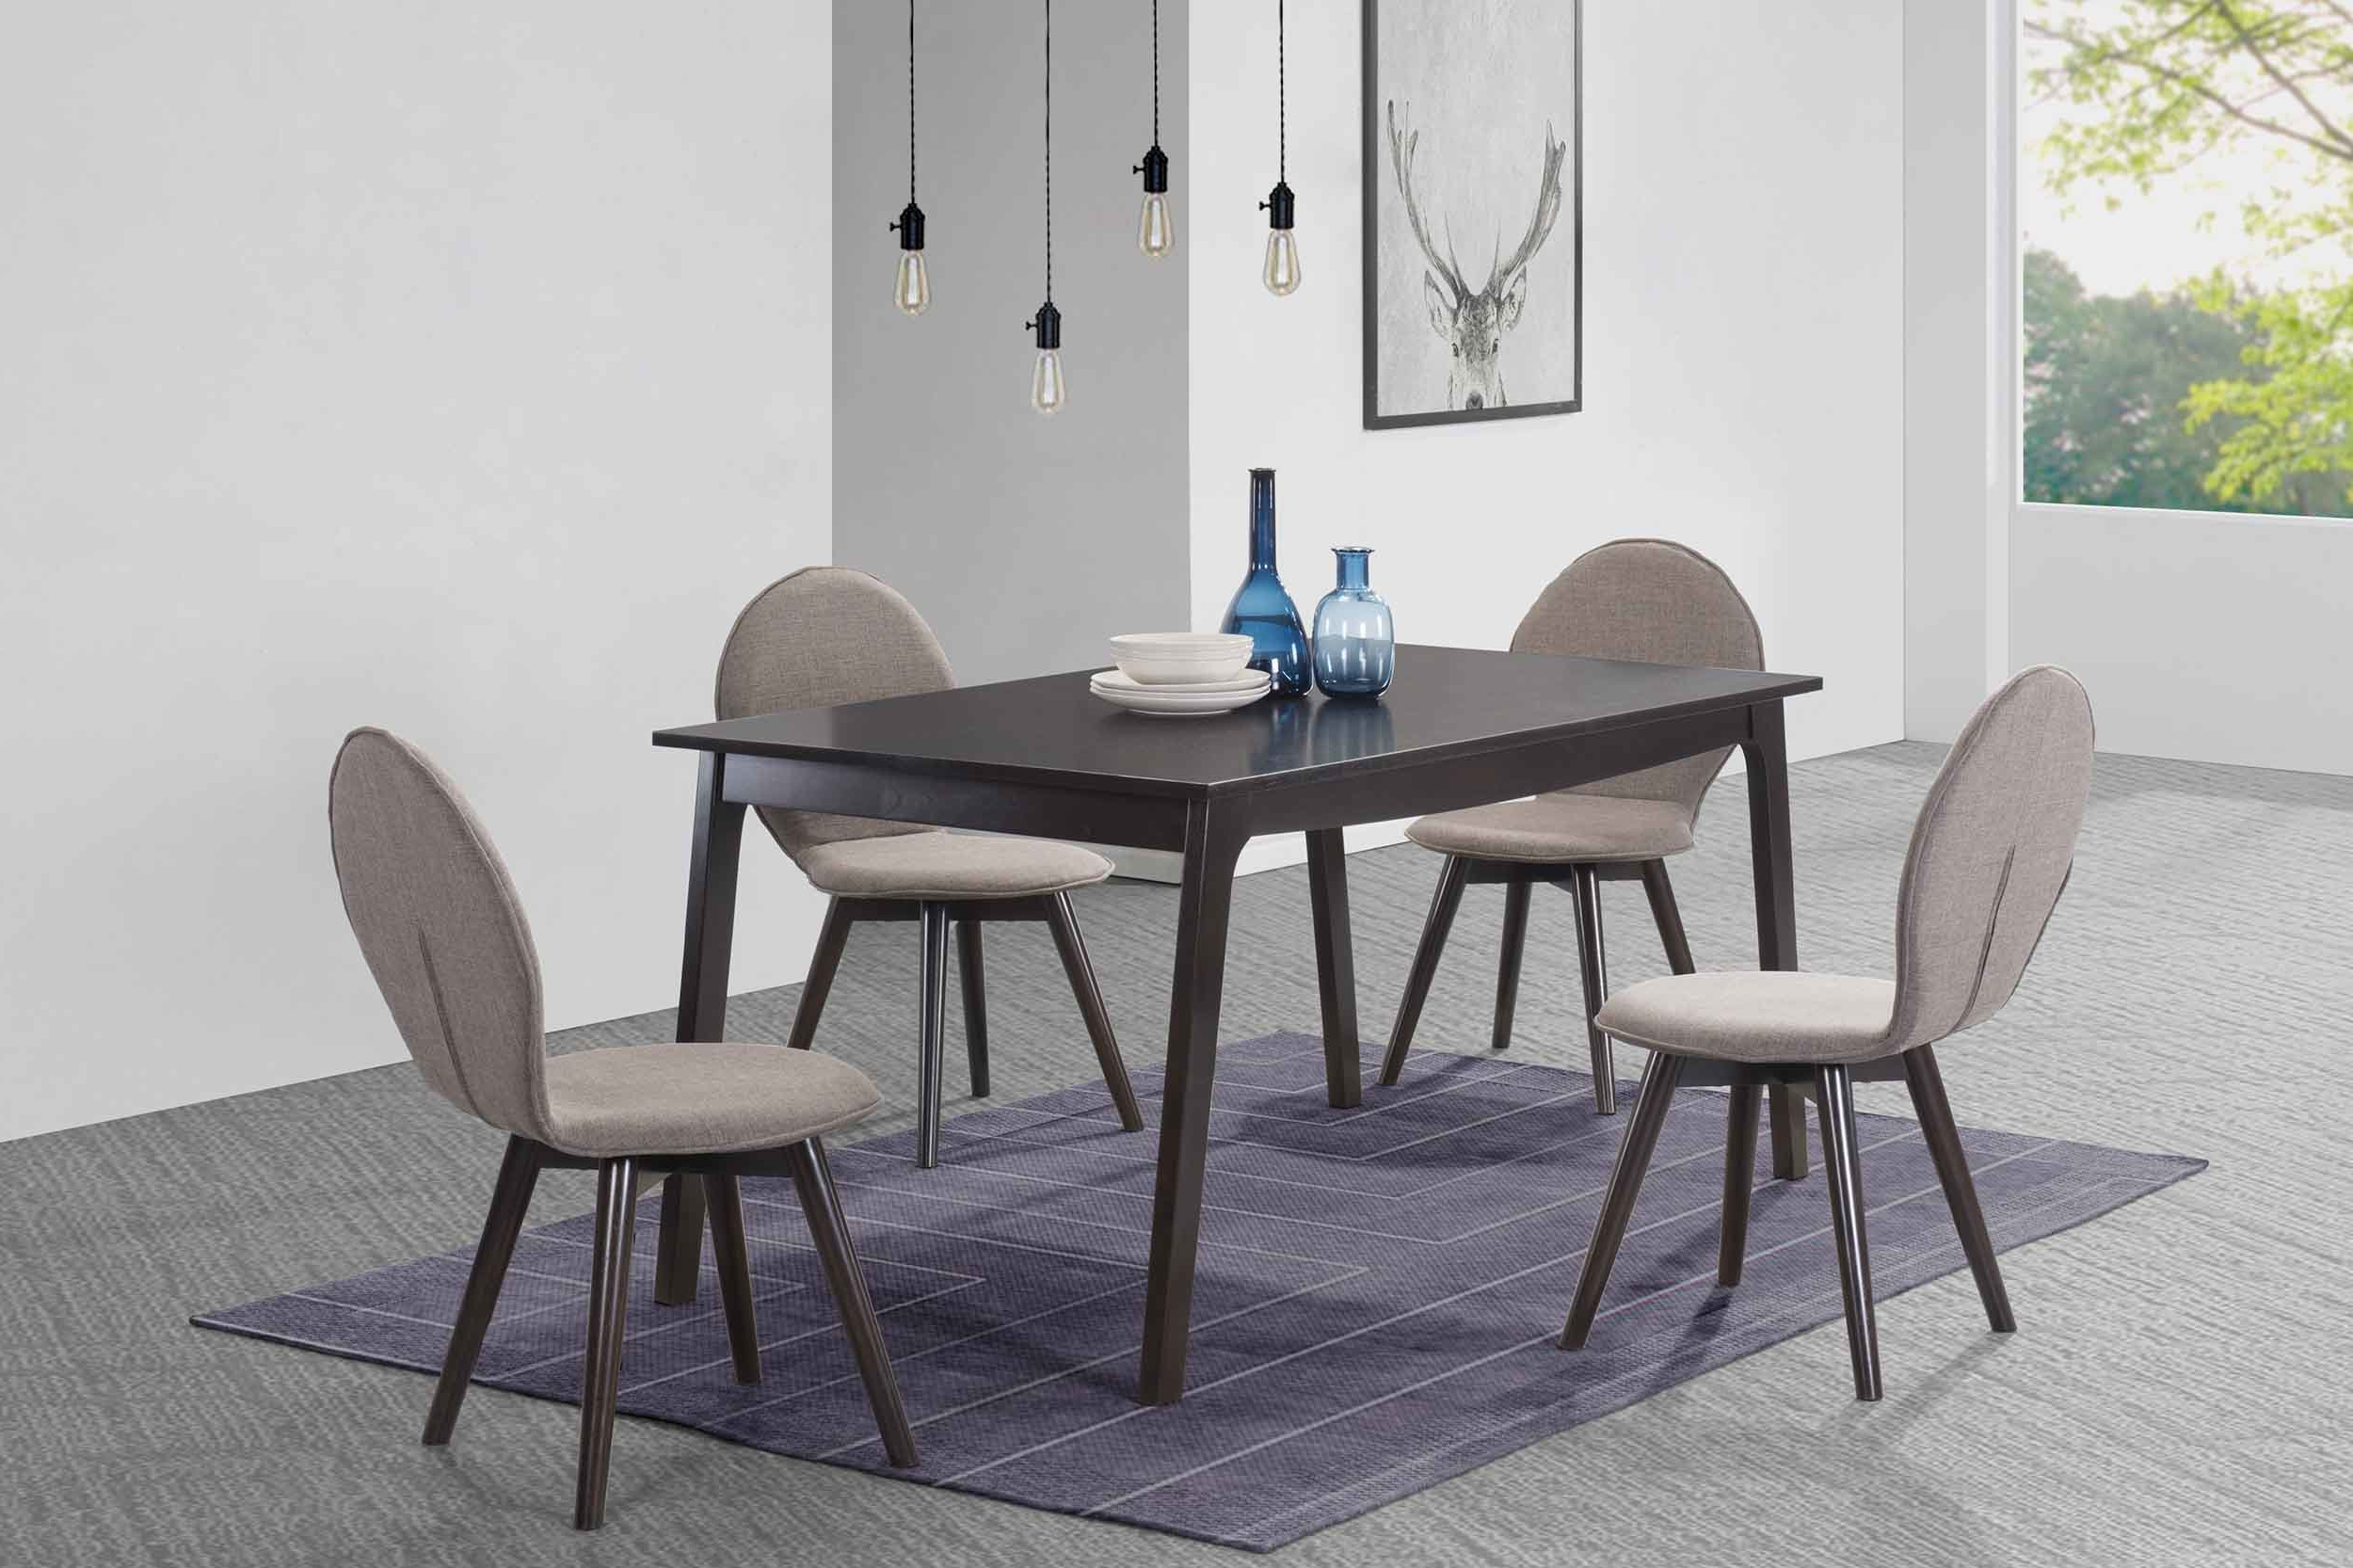 2020 George Oliver Baney 5 Piece Dining Set (View 2 of 25)